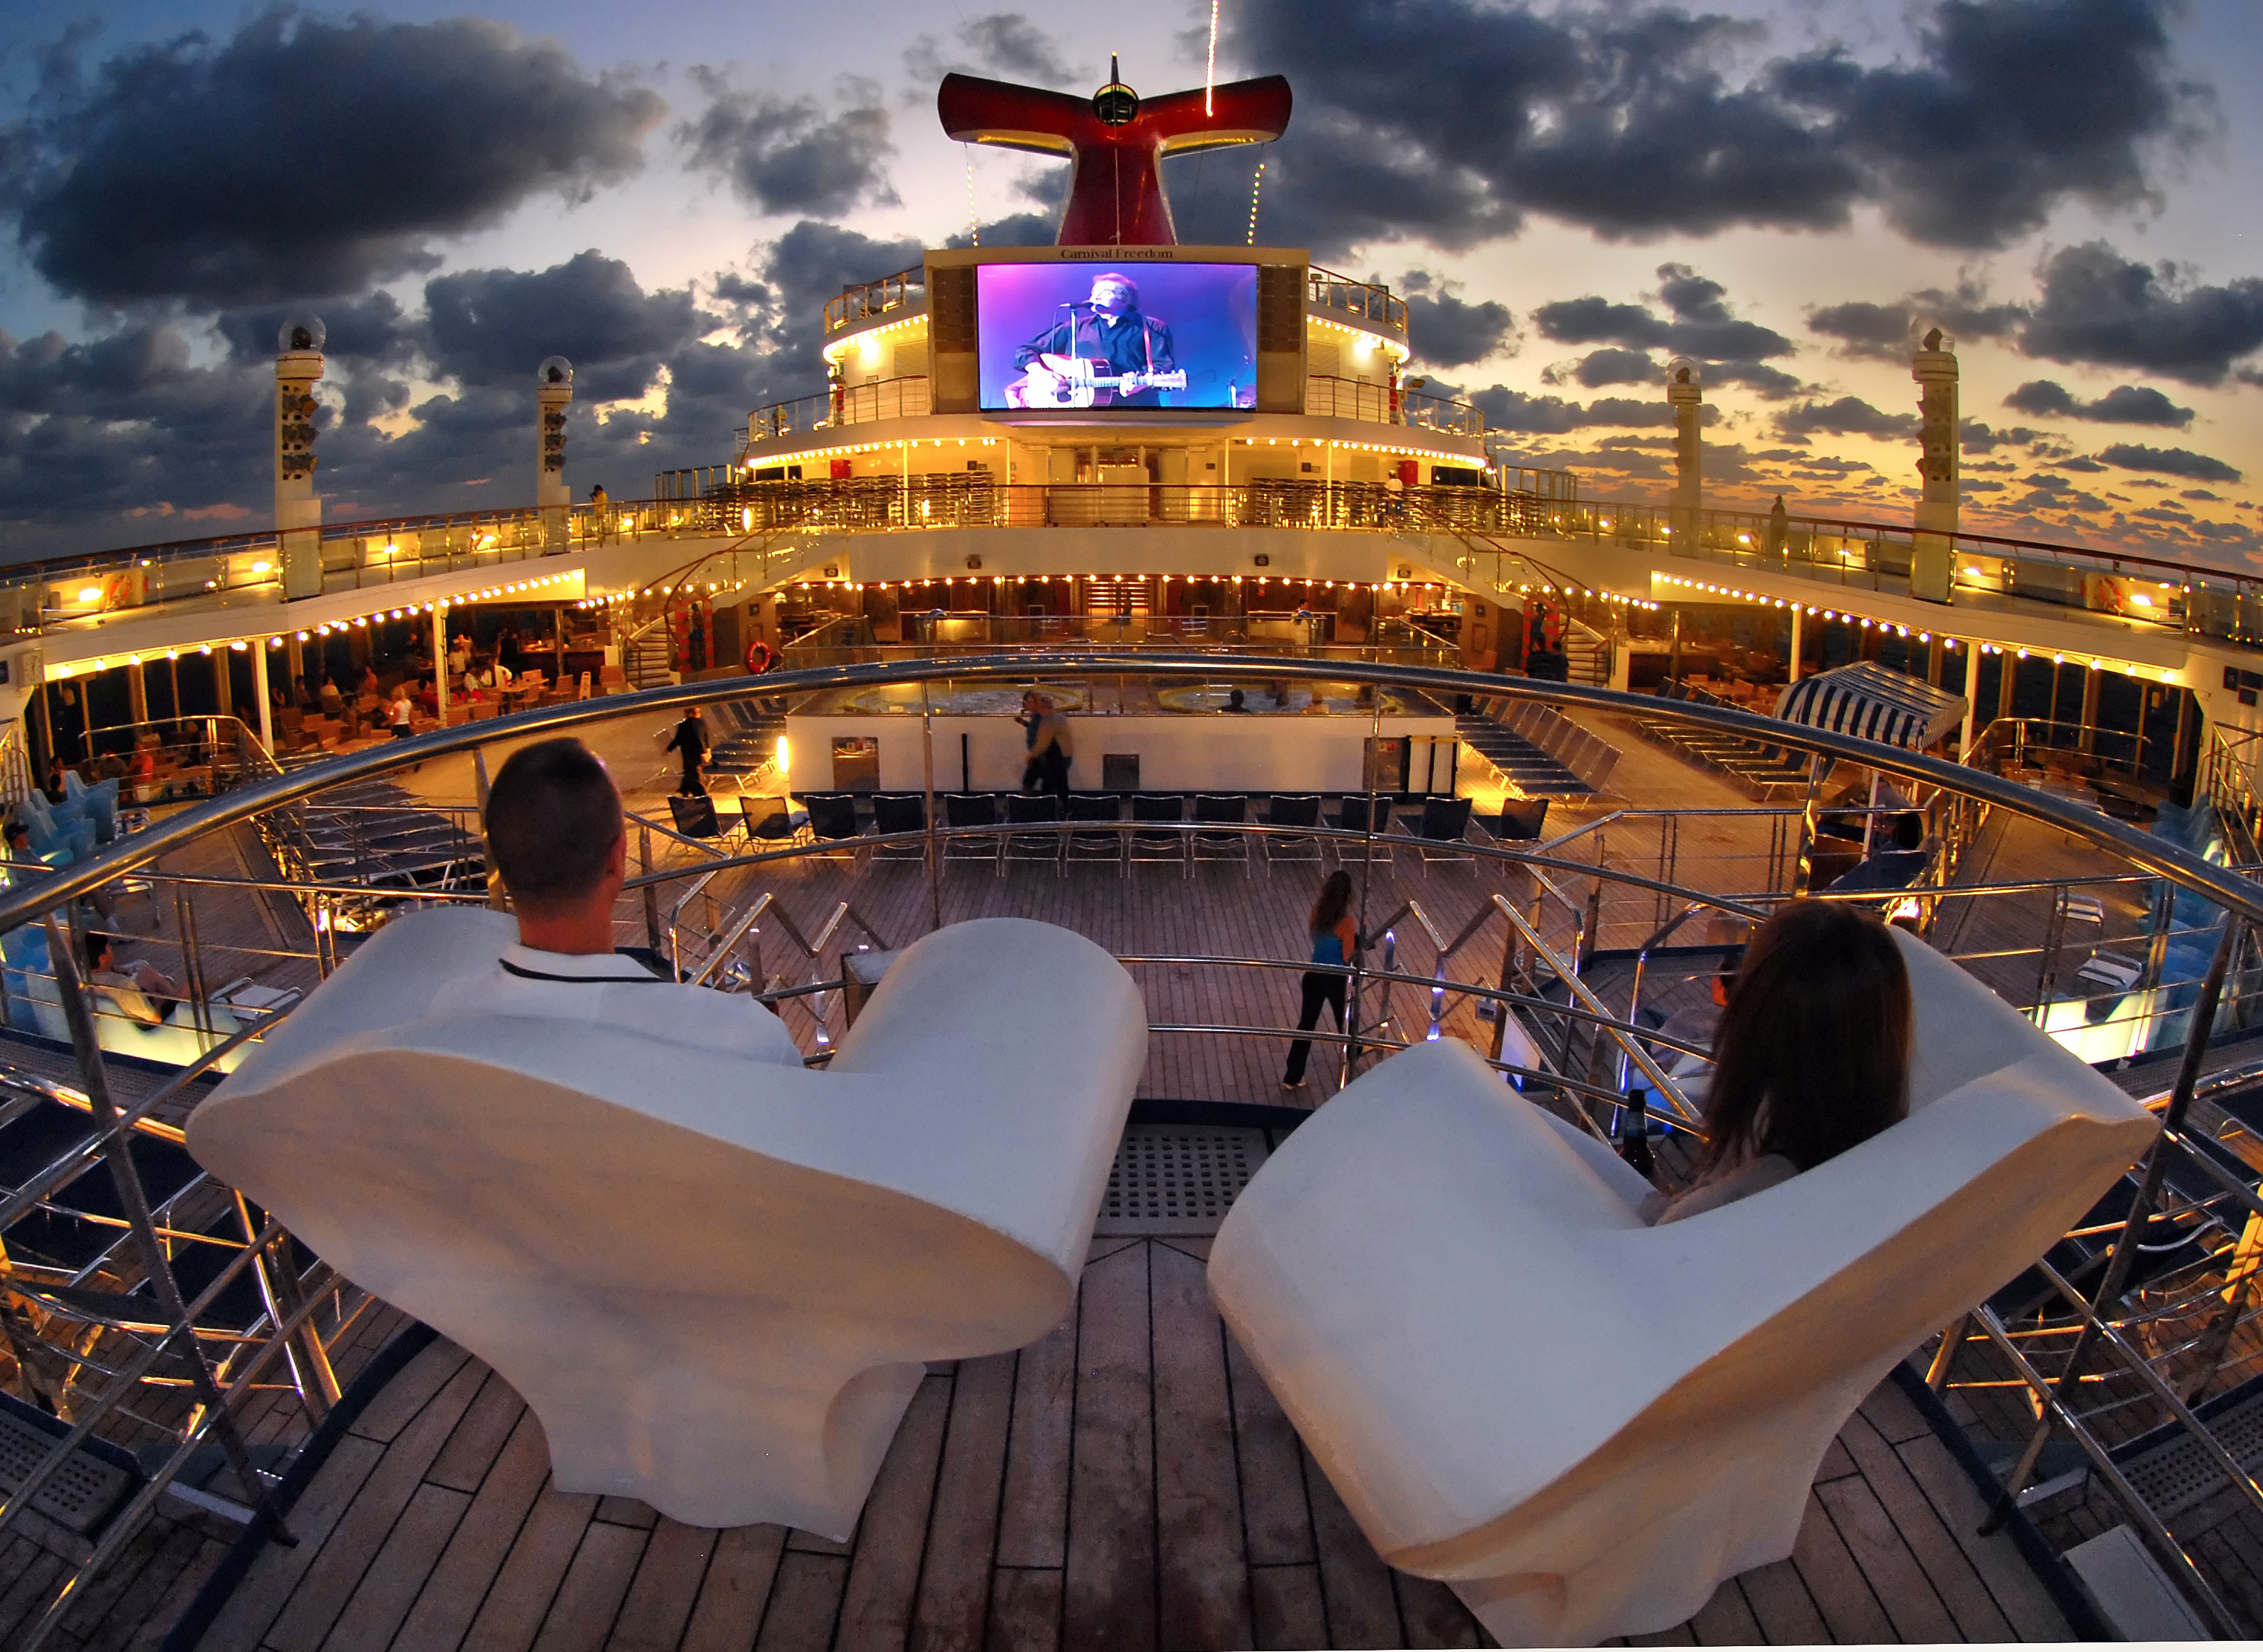 HD wallpapers cruise interior room vs ocean view